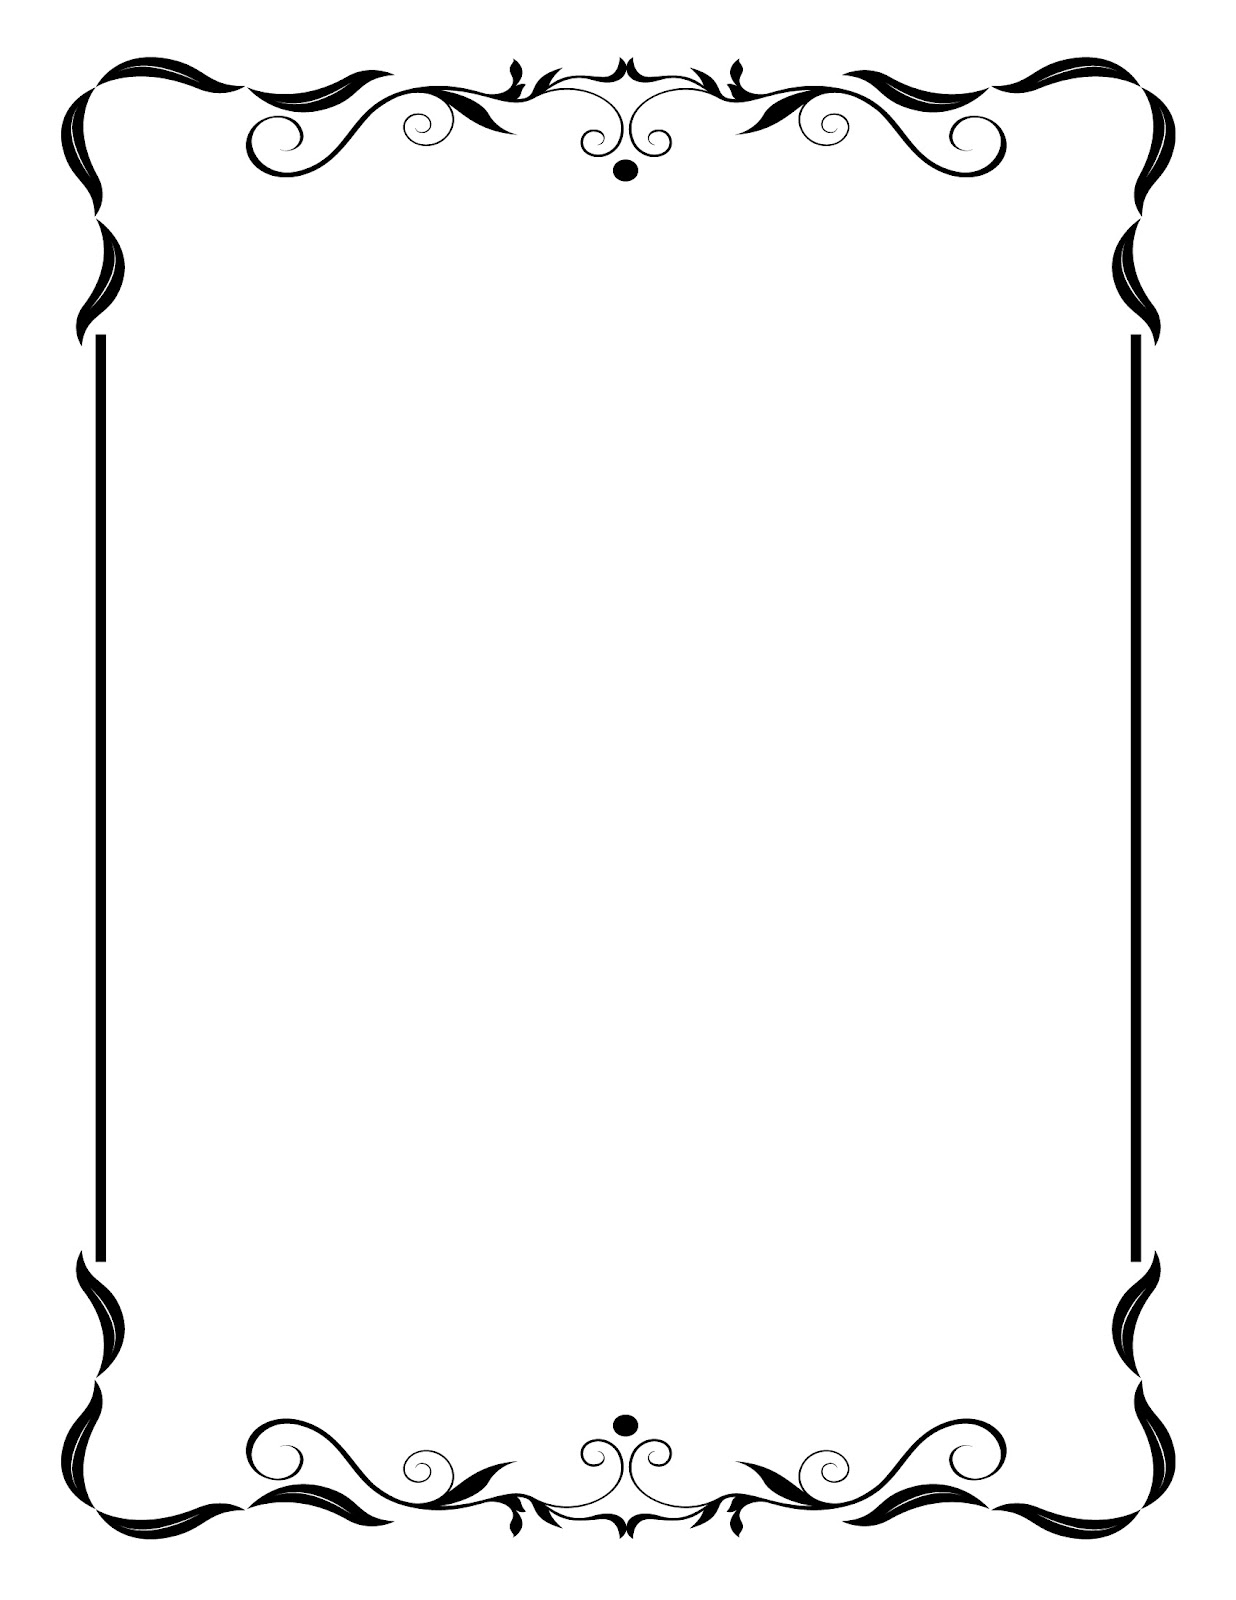 Vintagelime clipart picture free download Free Elegant Lines Cliparts, Download Free Clip Art, Free ... picture free download